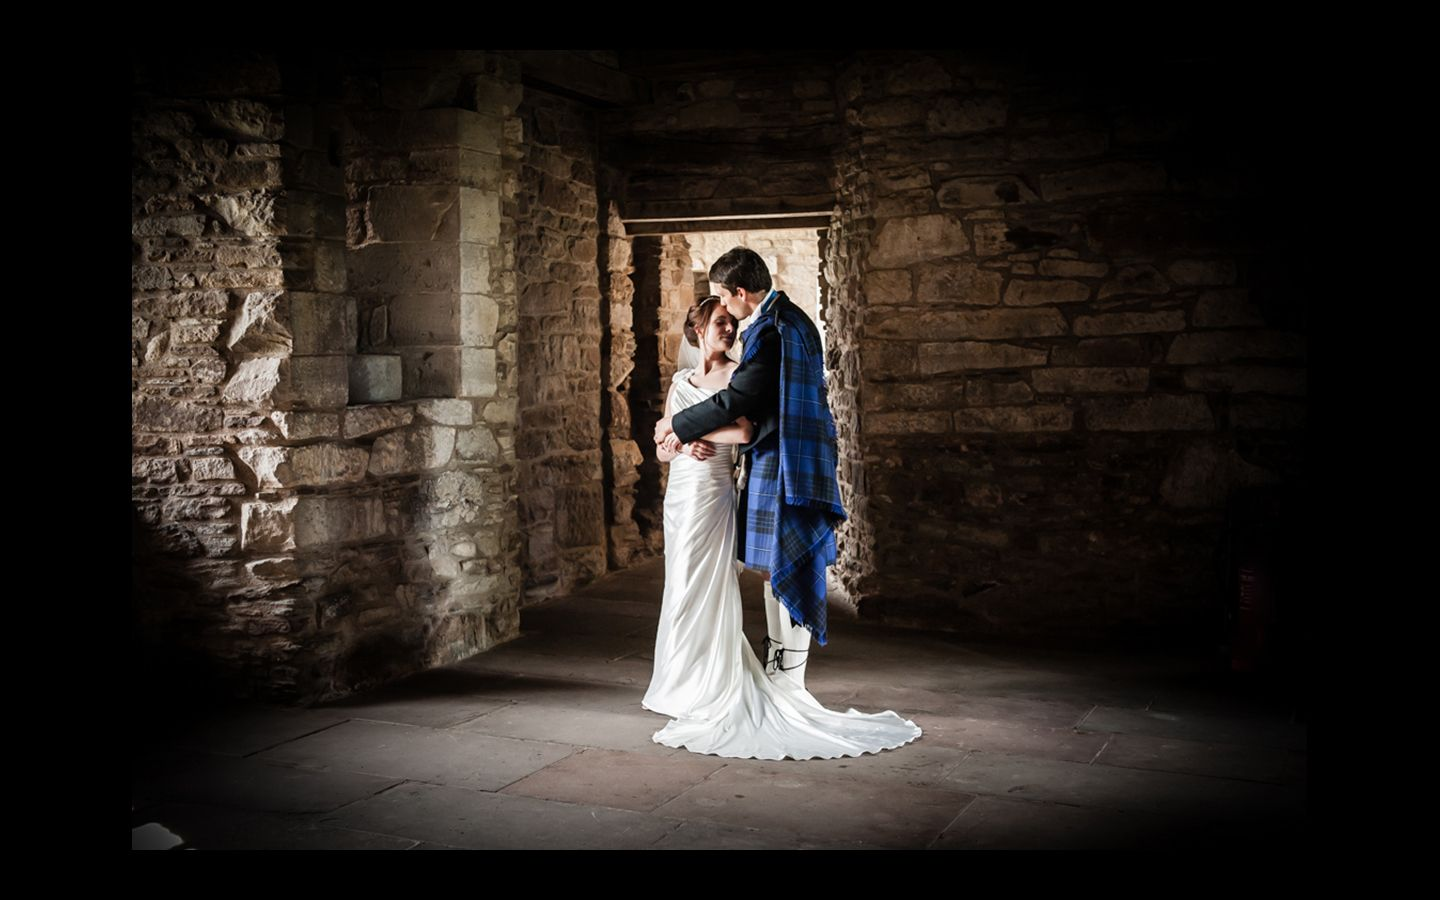 Would you like to get married in a Scottish castle?  Contact us today at: www.bluethistleweddings.co.uk